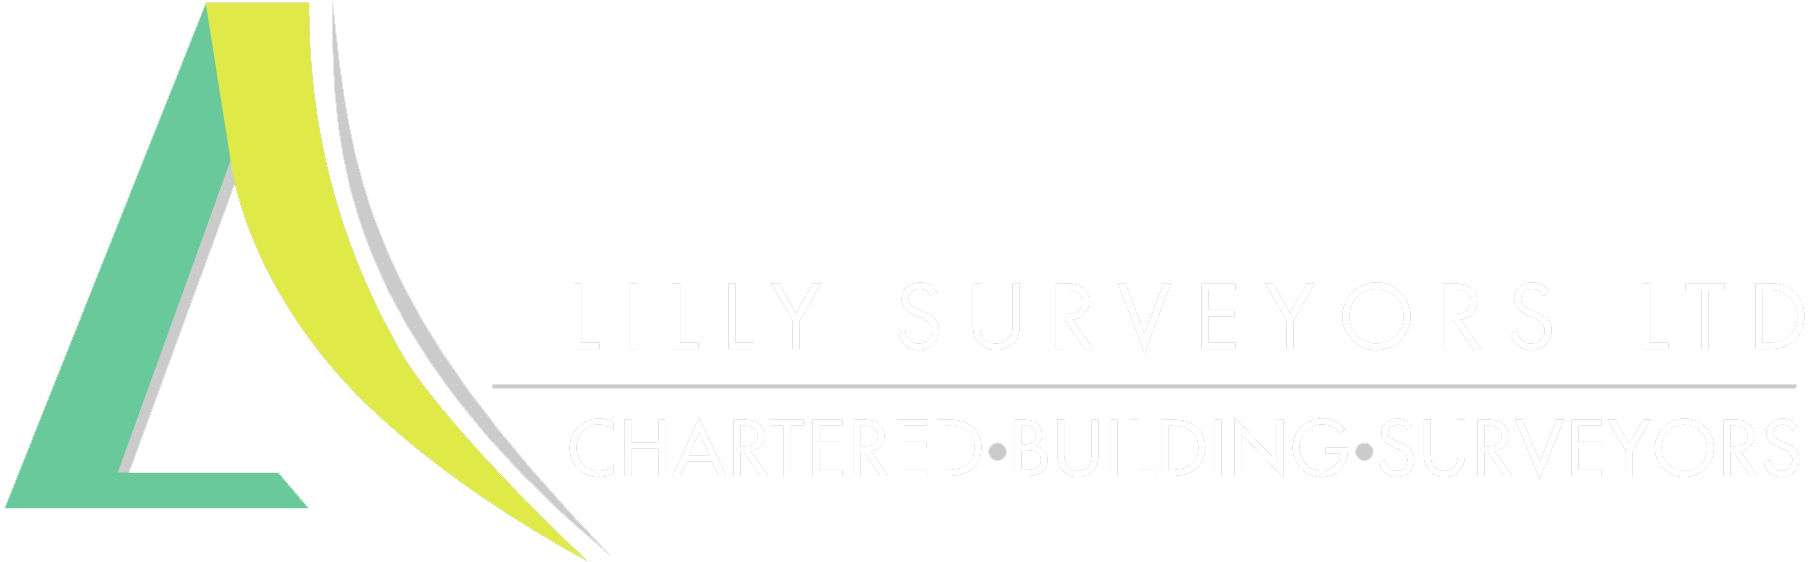 Lilly Surveyors